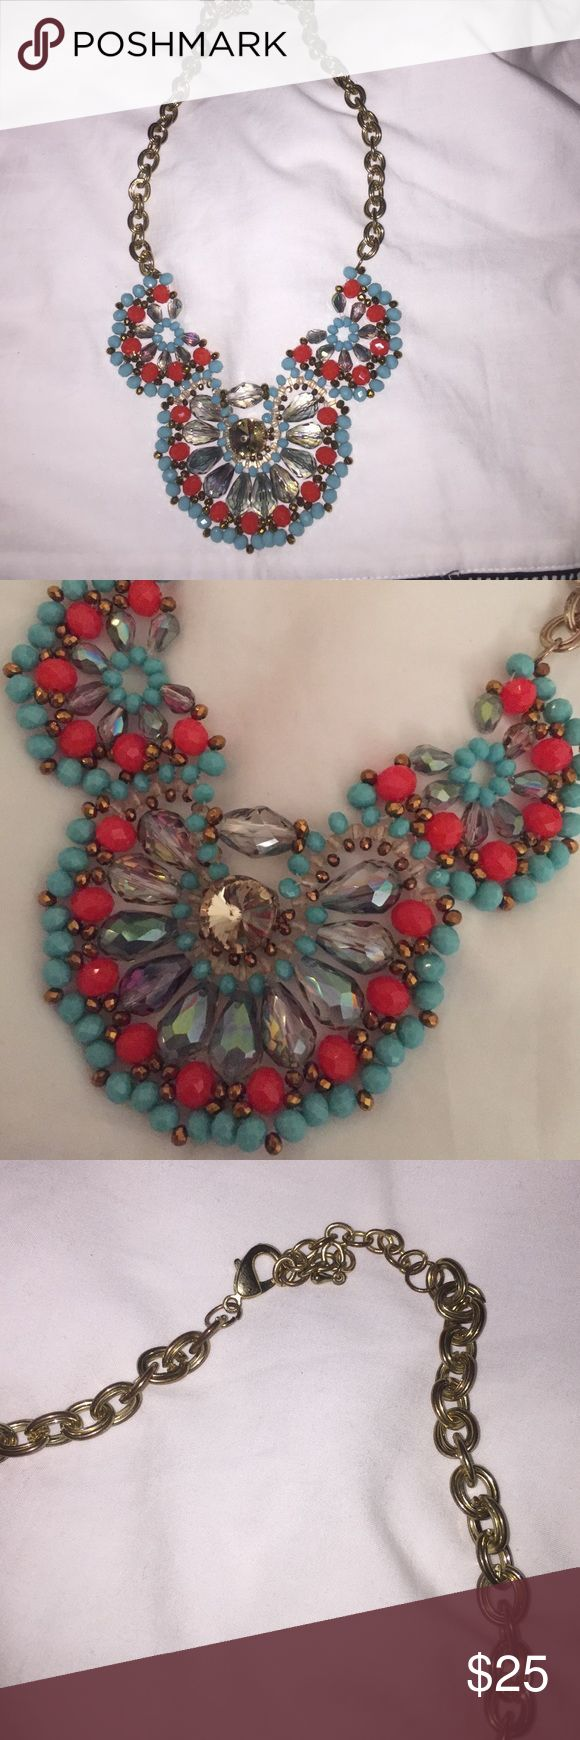 Turquoise and coral statement necklace Adorable statement necklace with gold accents. Only signs of ware on chain (some discoloration and rust towards clasp) but cannot be seen when worn. Easy to throw on to dress up any outfit! Francesca's Collections Jewelry Necklaces